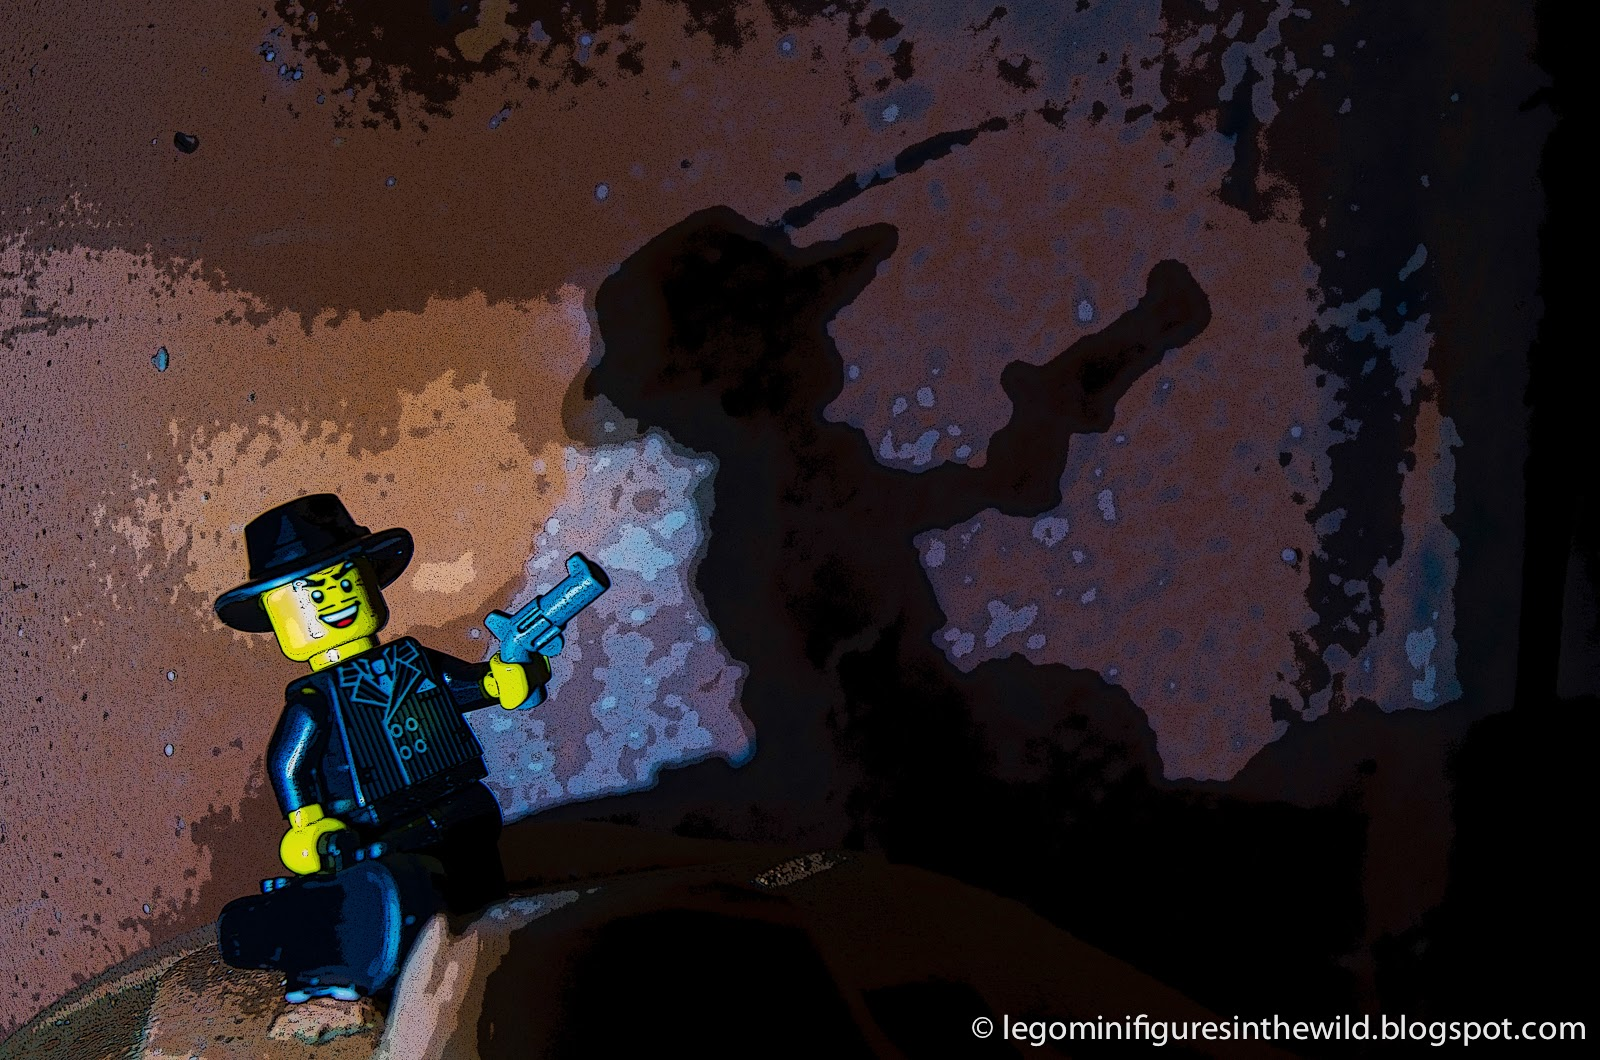 Lego Minifigures Series 5 Gangster - Wallpaper